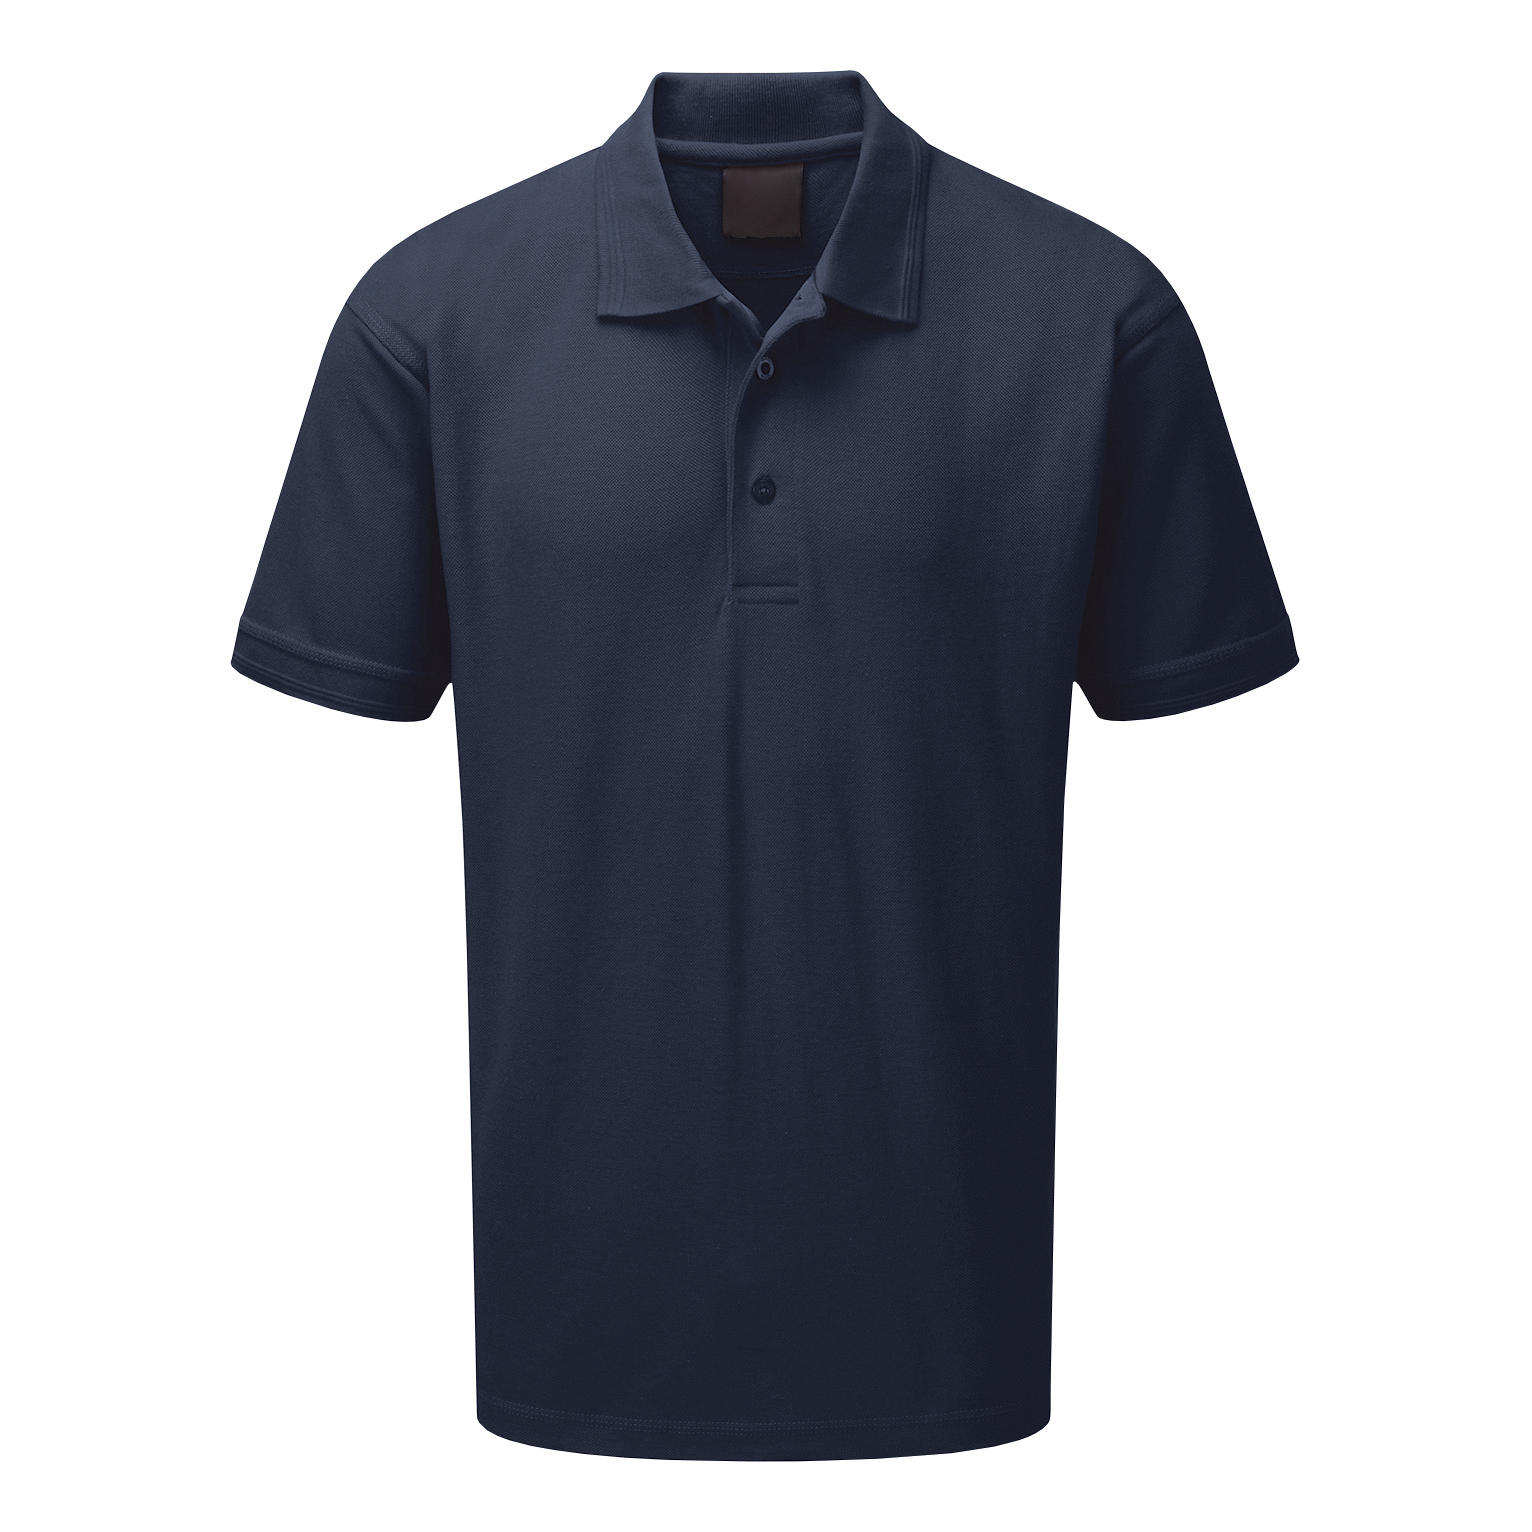 Supertouch Polo Shirt Classic Polycotton XXLarge Navy Ref 56CN5 *Approx 3 Day Leadtime*